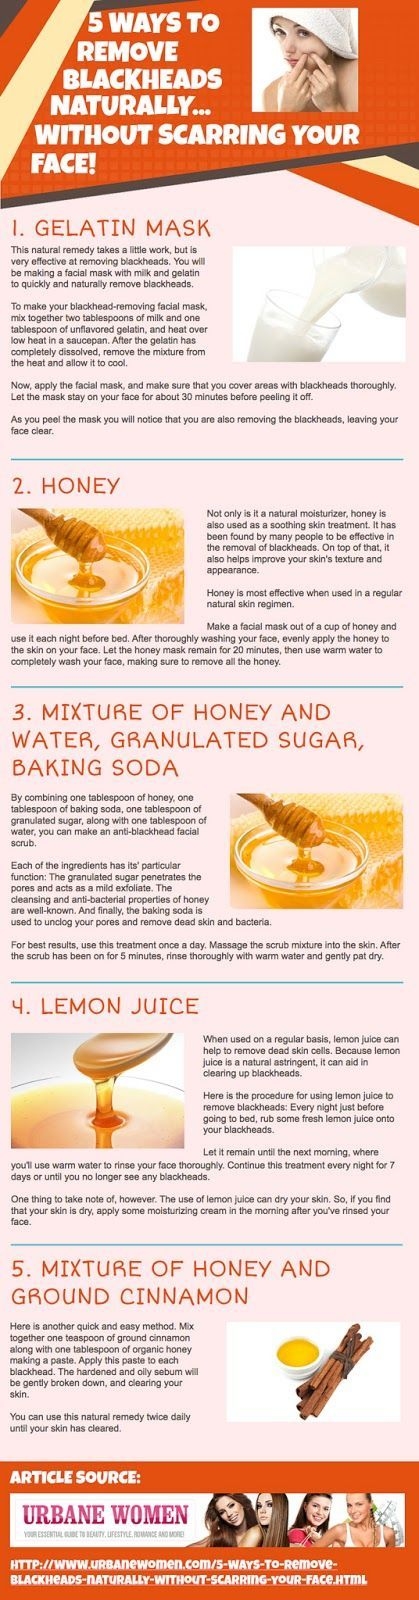 Health & nutrition tips: Remove blackheads naturally